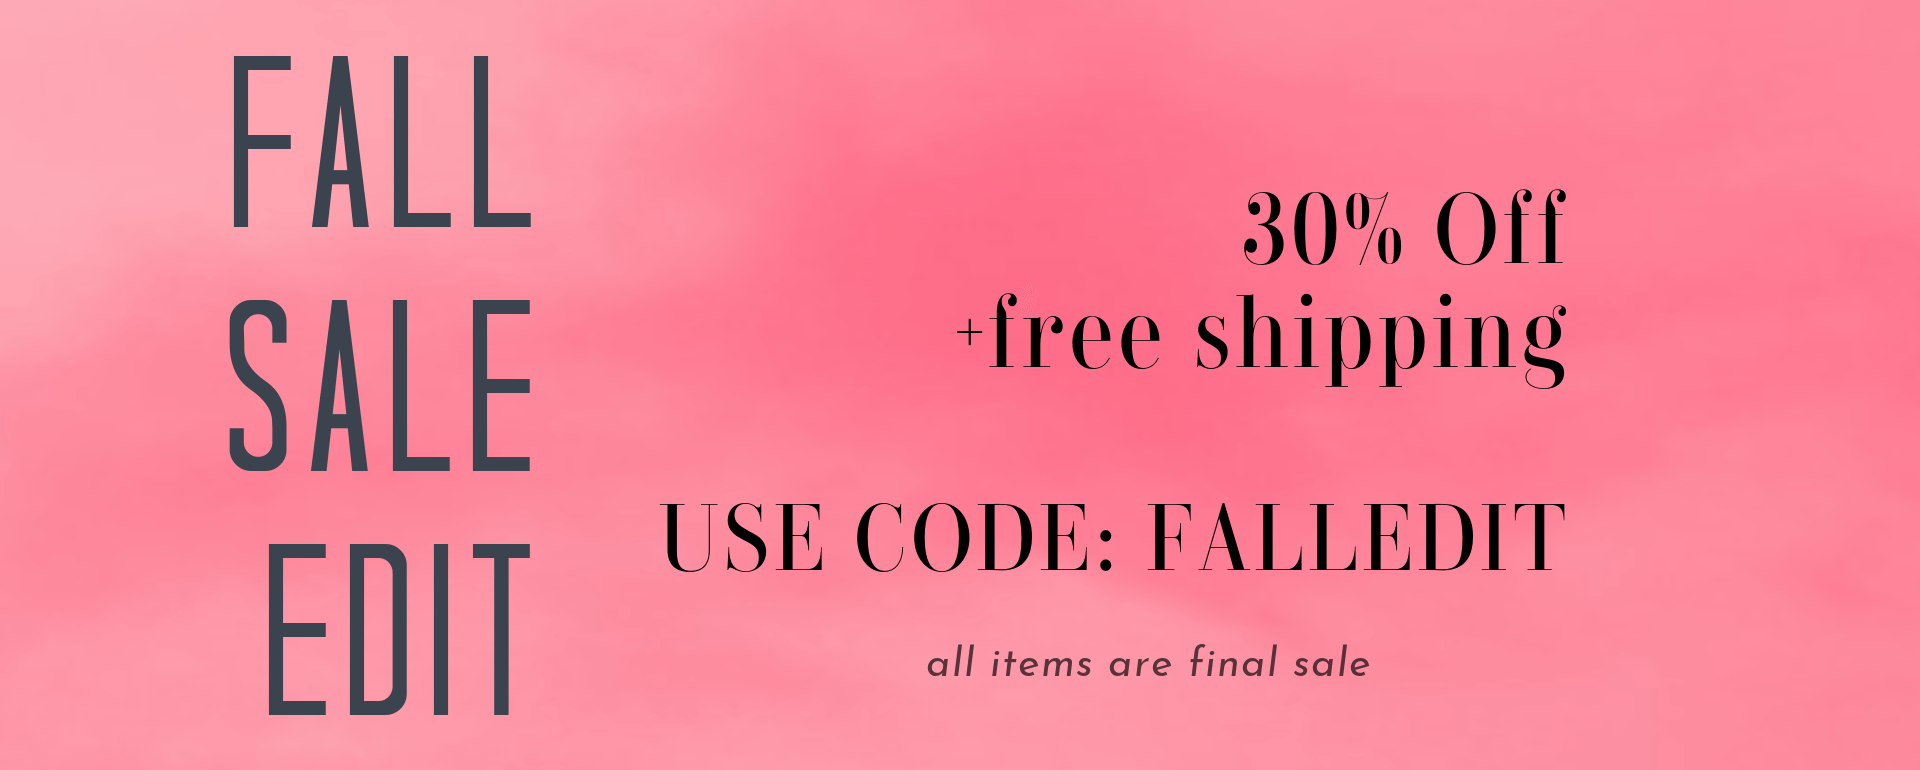 sweater dresses, poncho cardigans, sweaters women, leopard sweaters, cropped cardigans, cute sweaters for fall